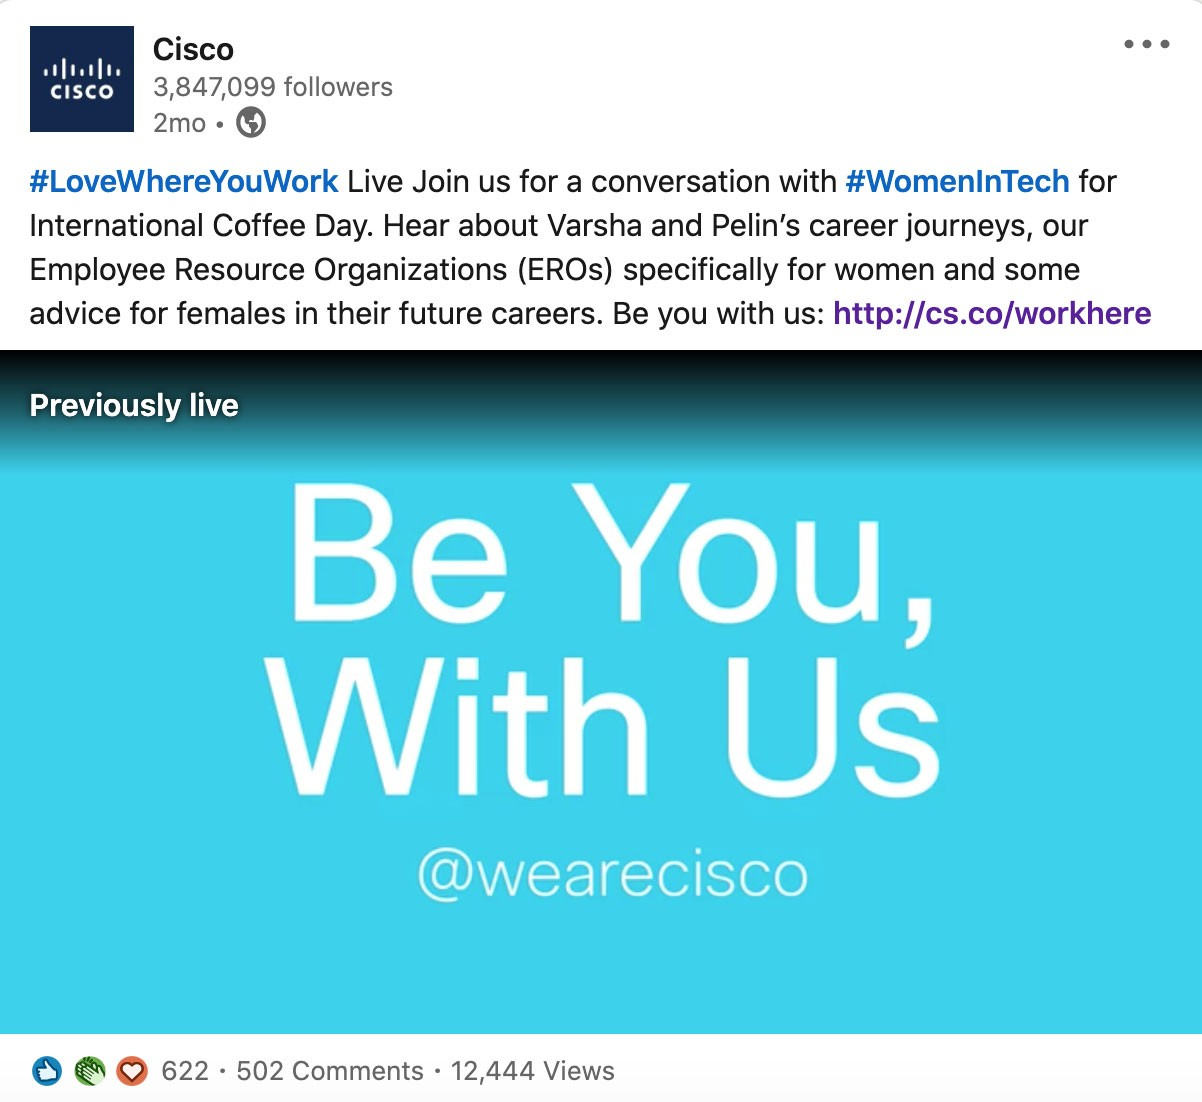 Screenshot of post from Cisco's LinkedIn Company Page promoting a LinkedIn Live event:  #LoveWhereYouWork Live Join us for a conversation with #WomenInTech for International Coffee Day. Hear about Varsha and Pelin's career journeys, our Employee Resource Organizations (EROs) specifically for women and some advice for females in their future careers. Be you with us: http://cs.co/workhere  LinkedIn Live has 622 reactions, 502 comments, and 12,444 views